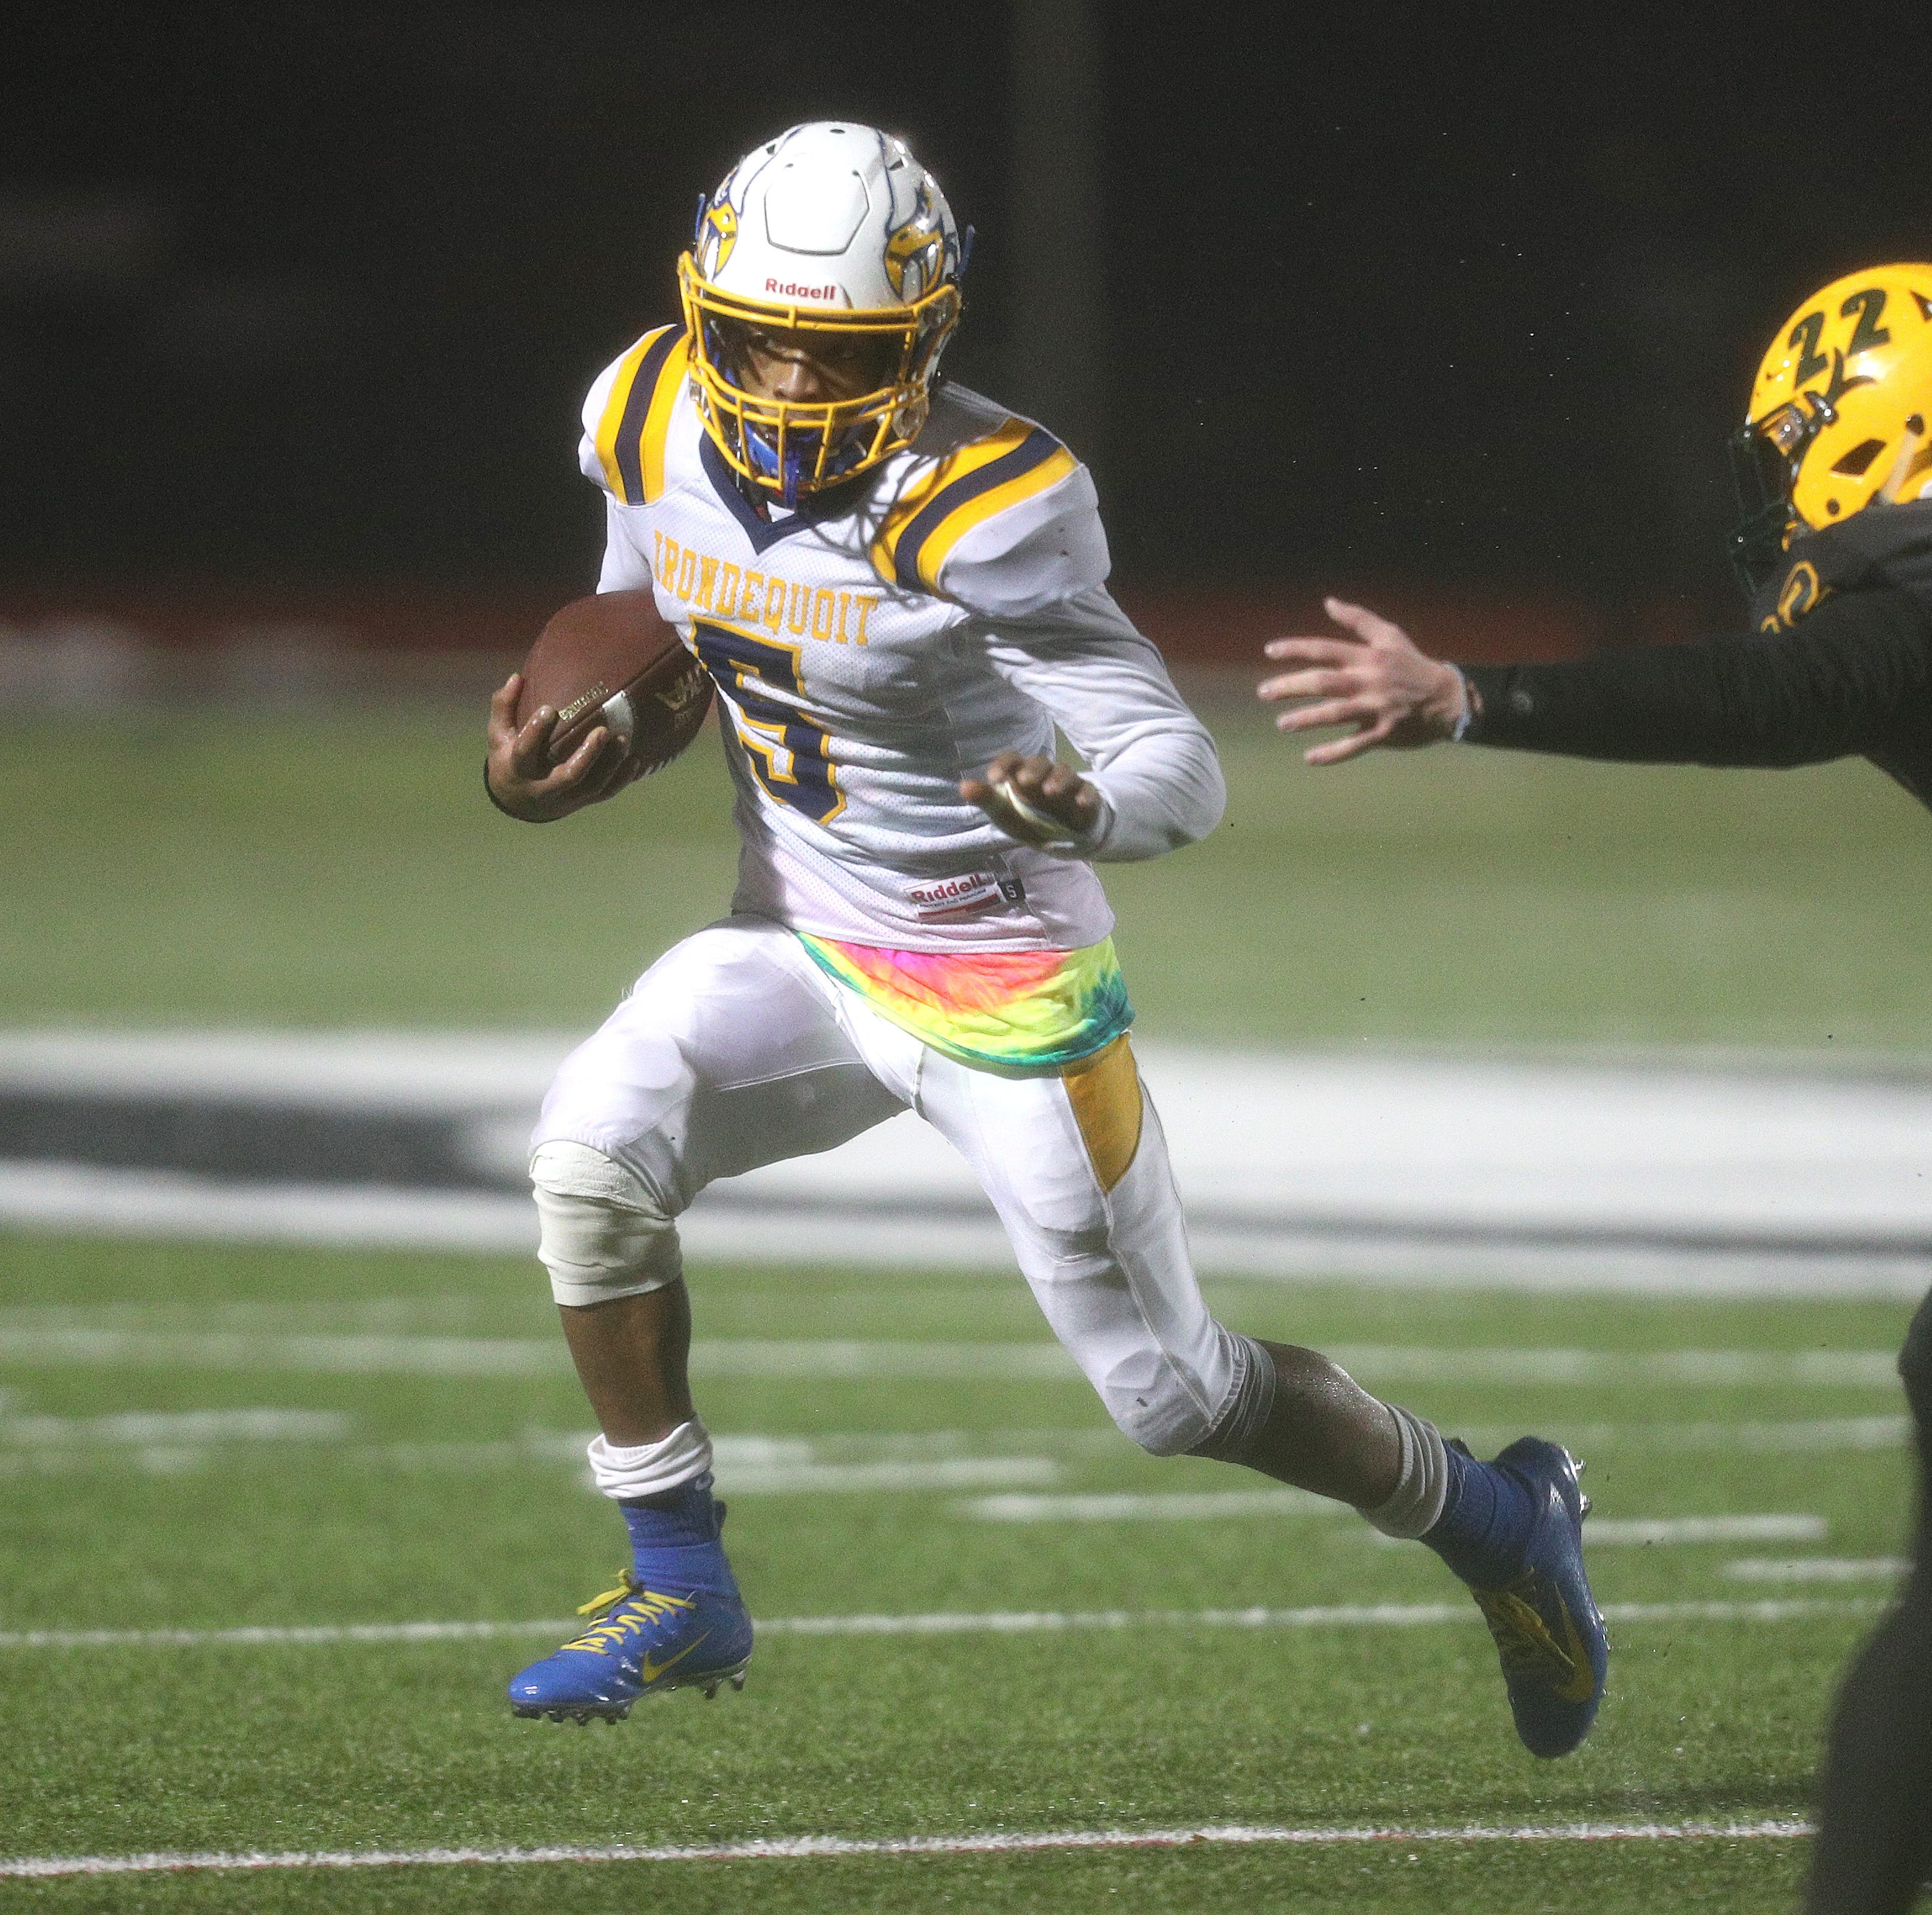 Irondequoit's Jadon Turner on the clock with National Signing Day approaching